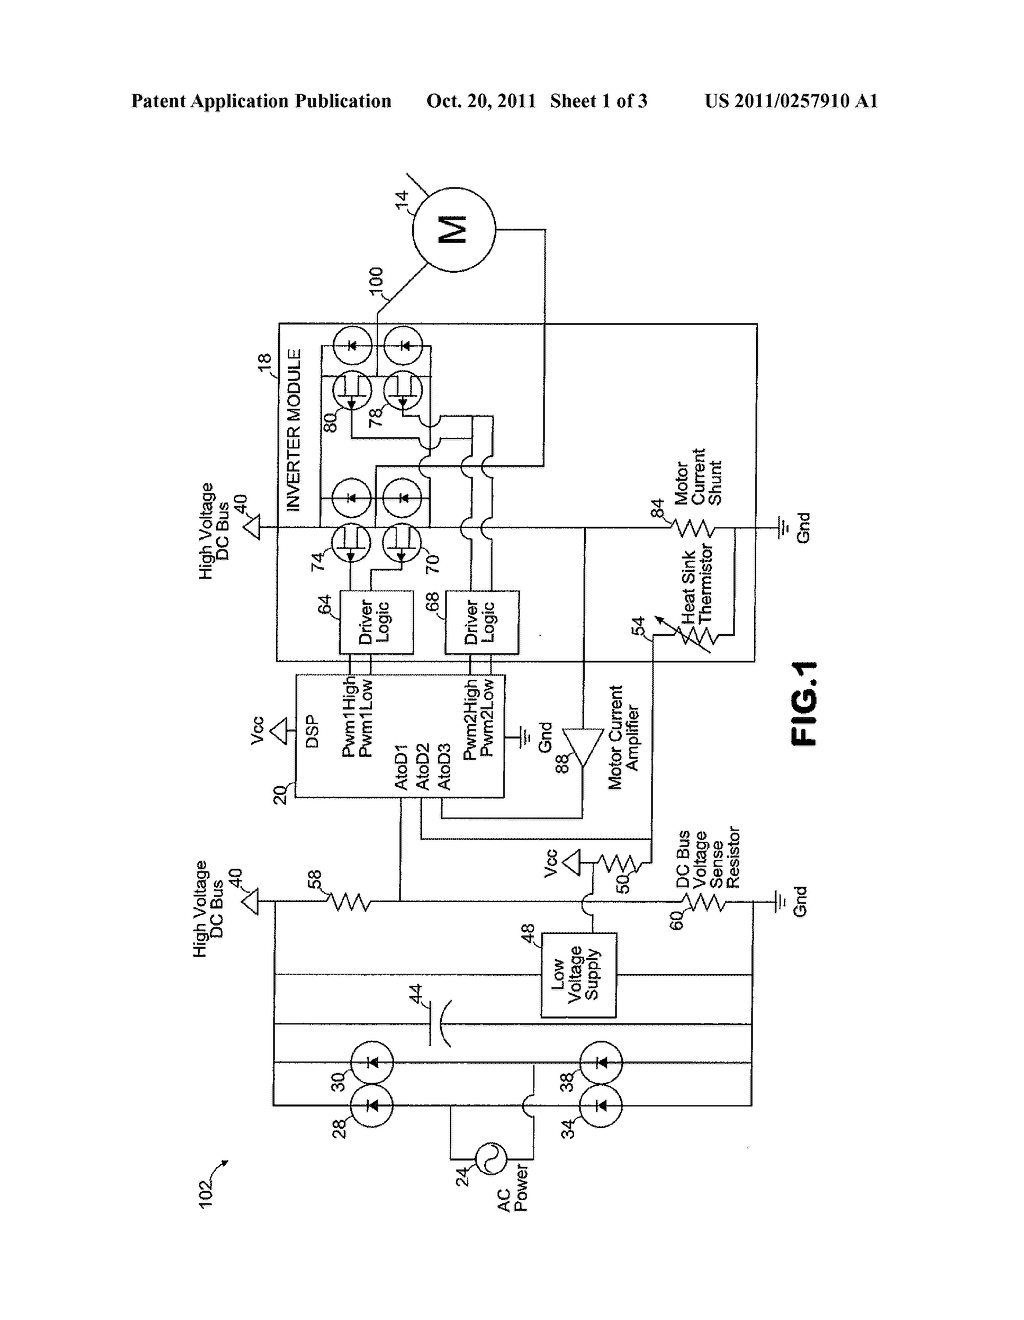 Method for Calibrating a Motor Control Circuit to Improve